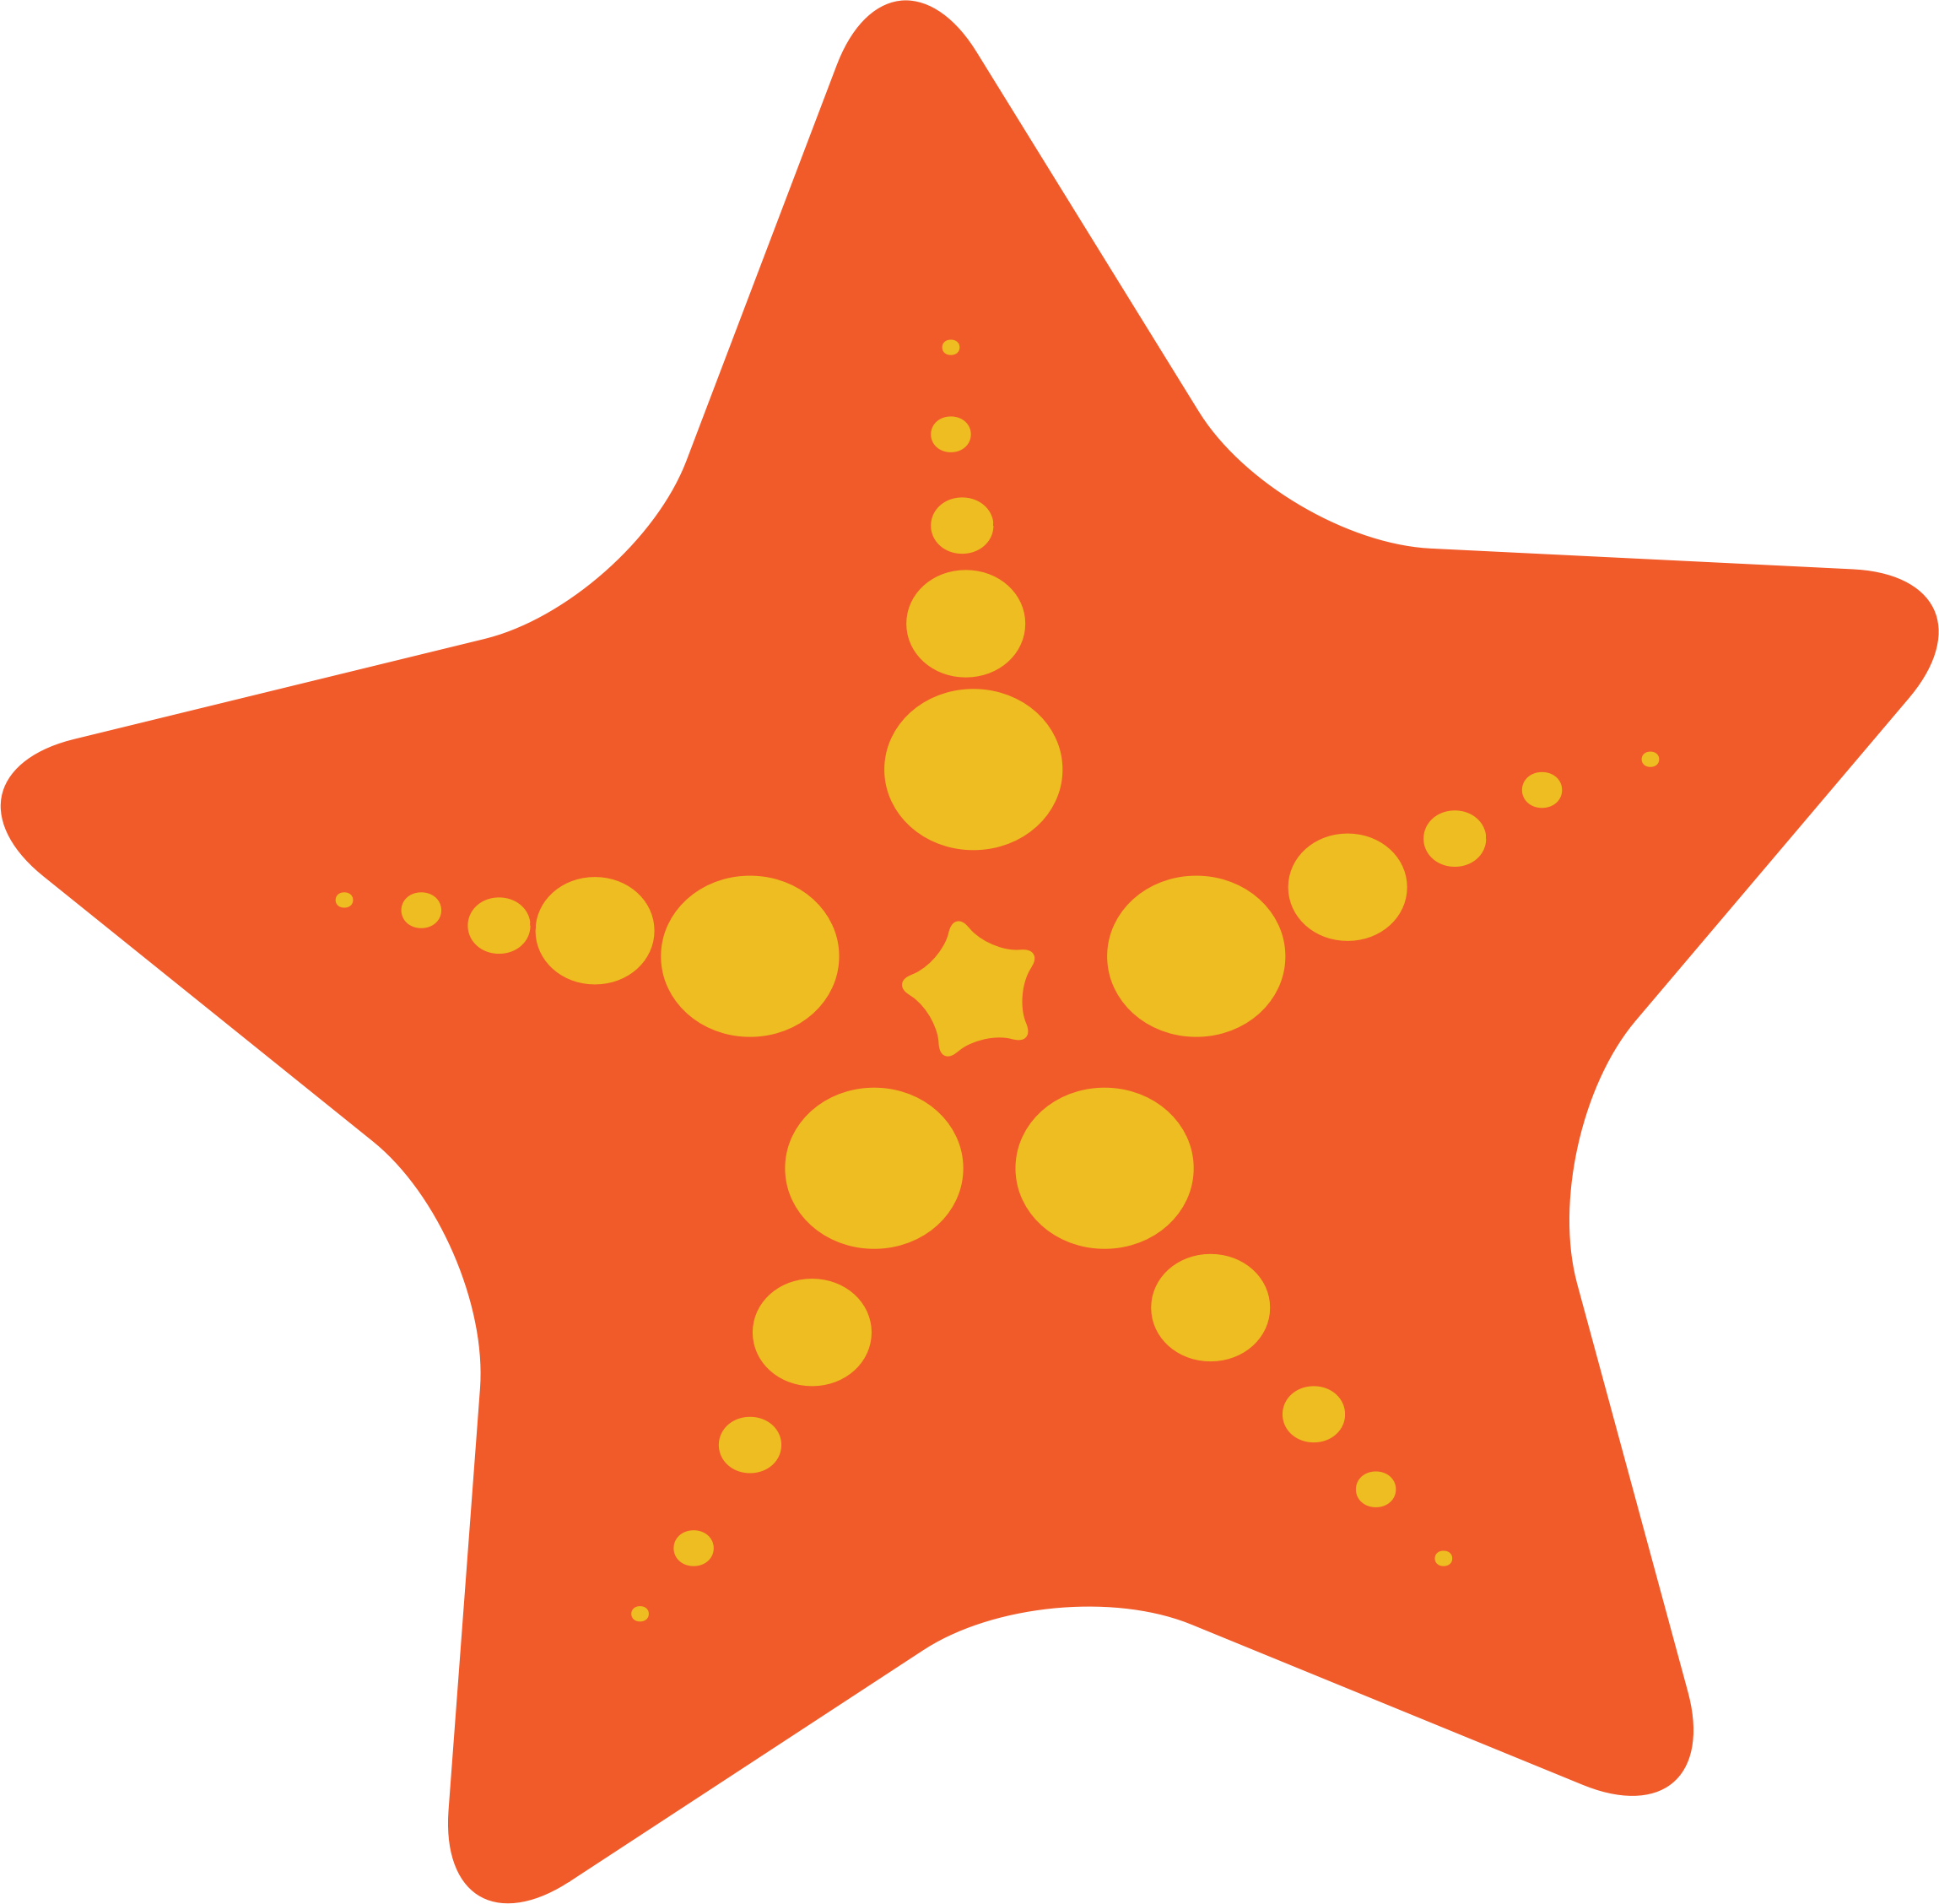 Free png star clipart banner freeuse download Starfish PNG images free download banner freeuse download